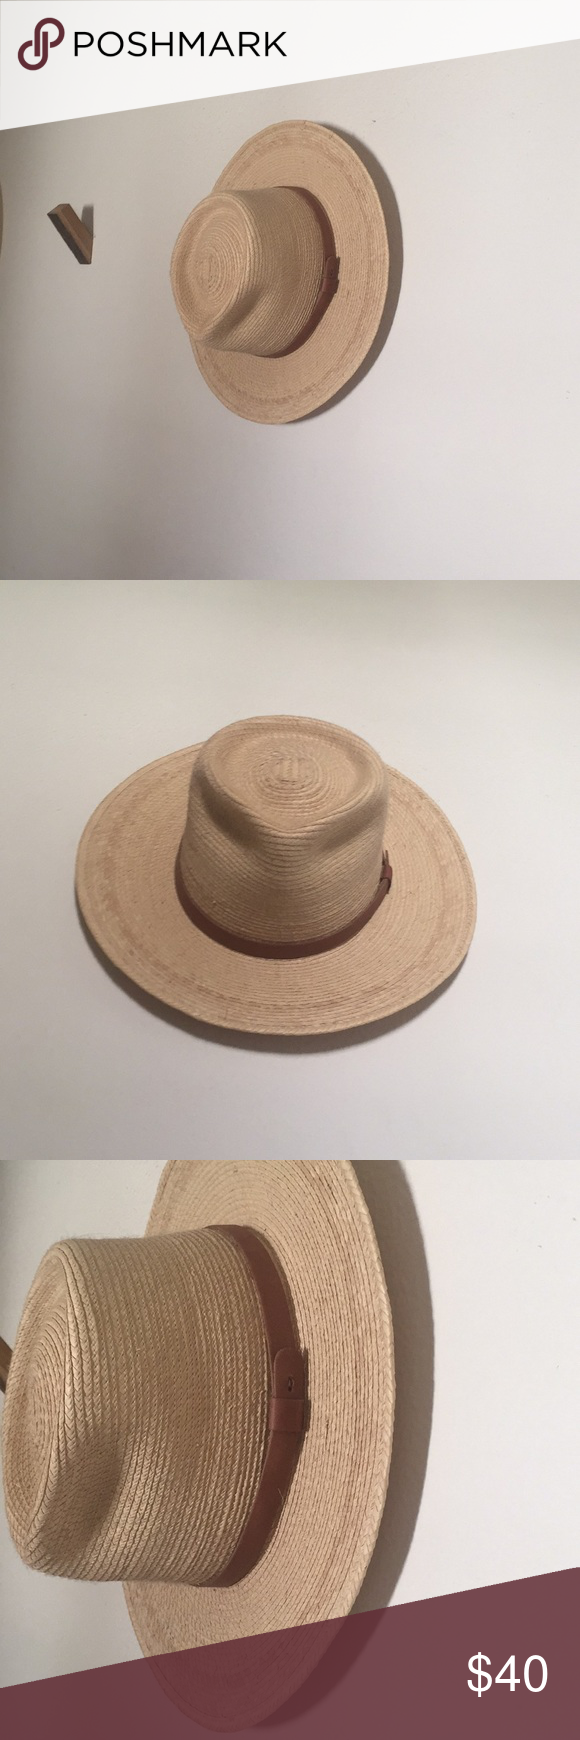 9973465744e0 Tear Drop Guatemalan Palm Leaf Straw Fedora Hat Excellent condition - only  worn once as too